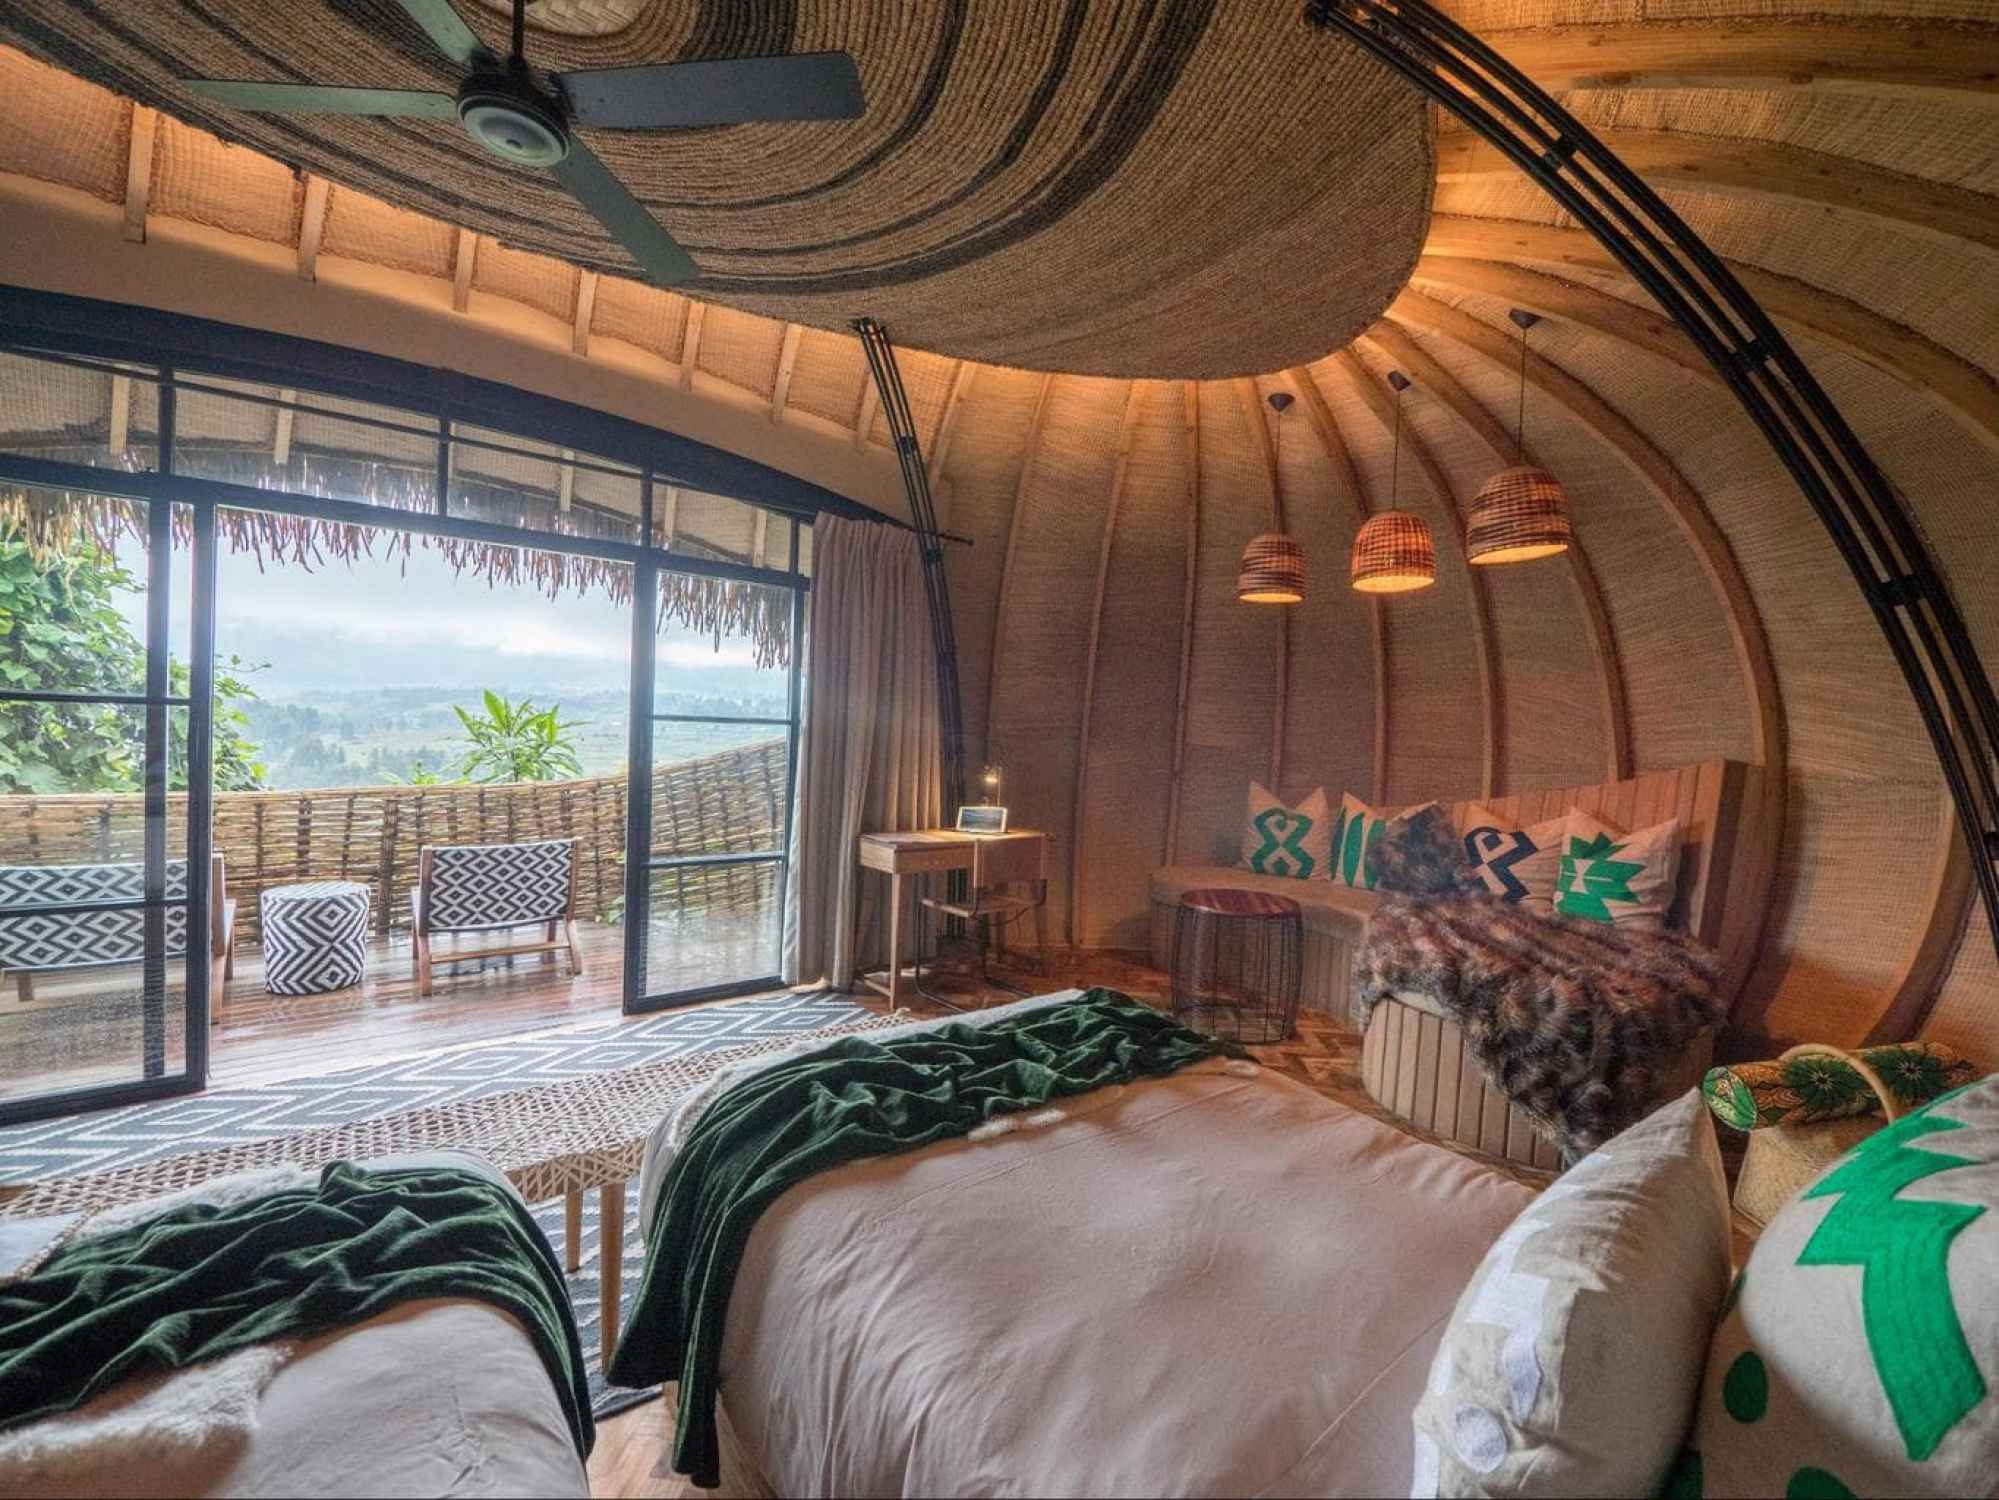 The bedroom at Bosate Lodge